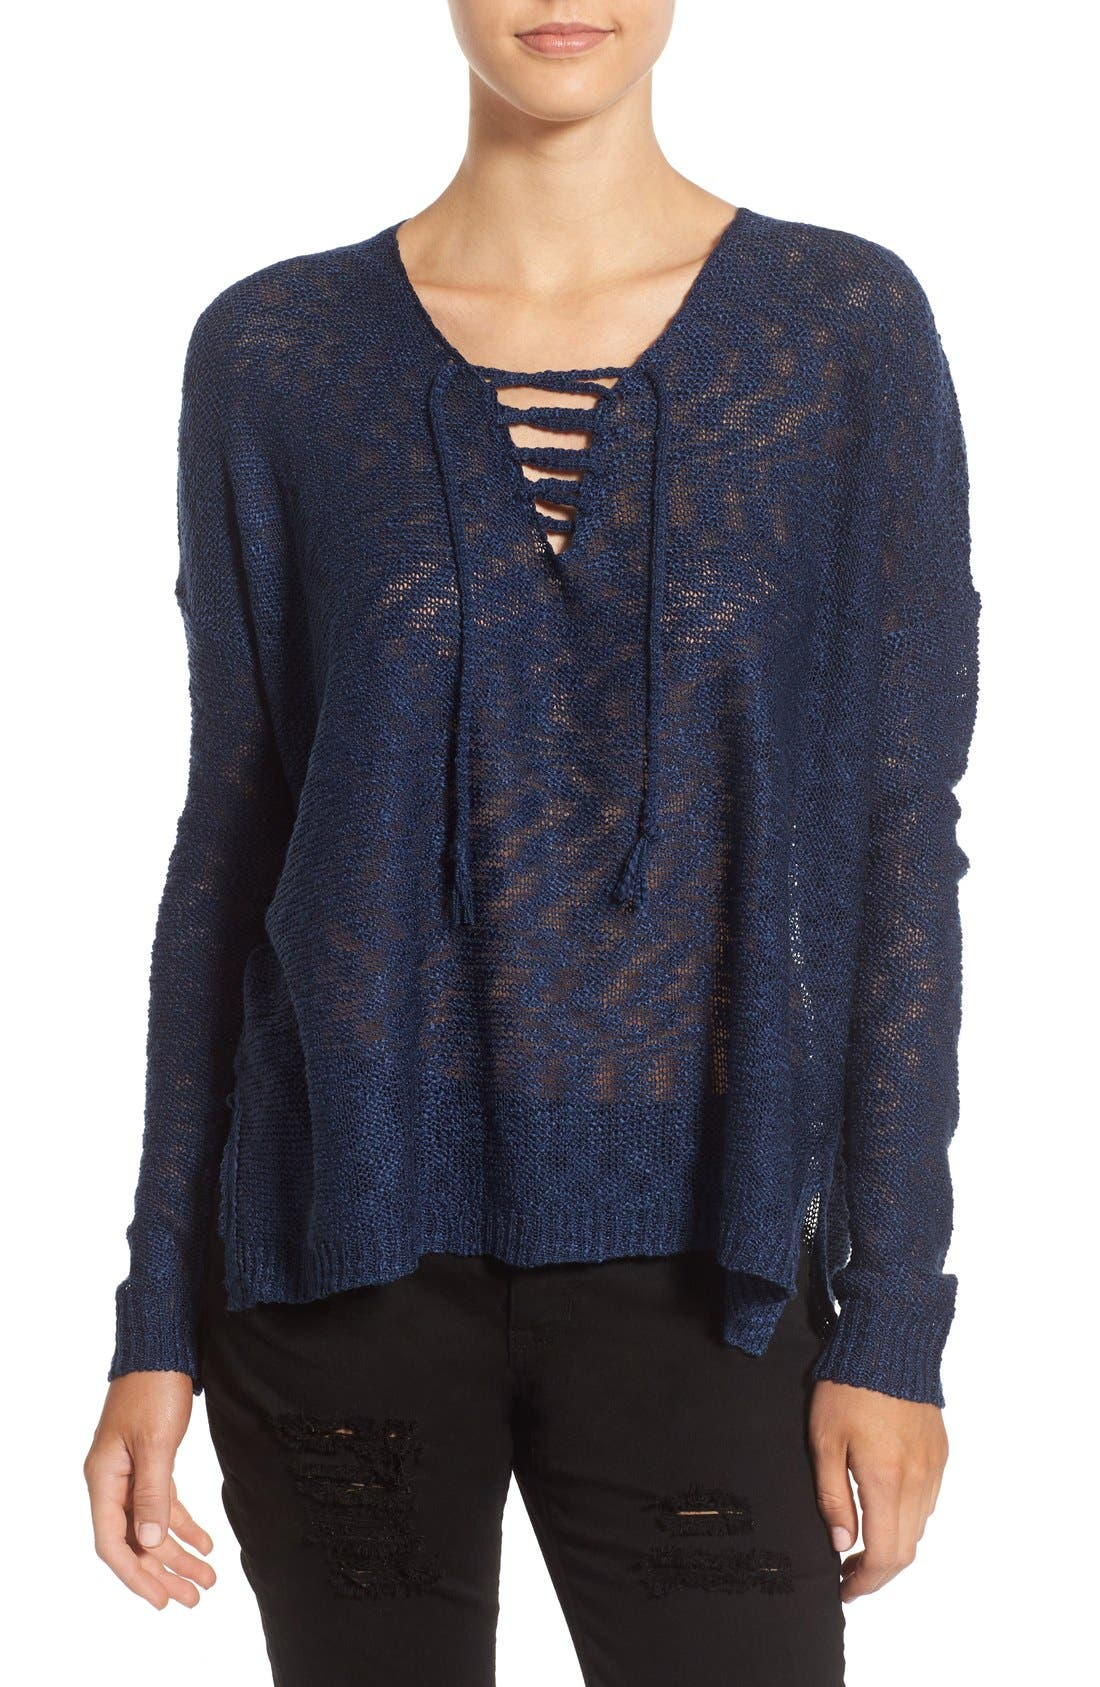 Alternate Image 1 Selected - Love by Design Lace-Up Pullover